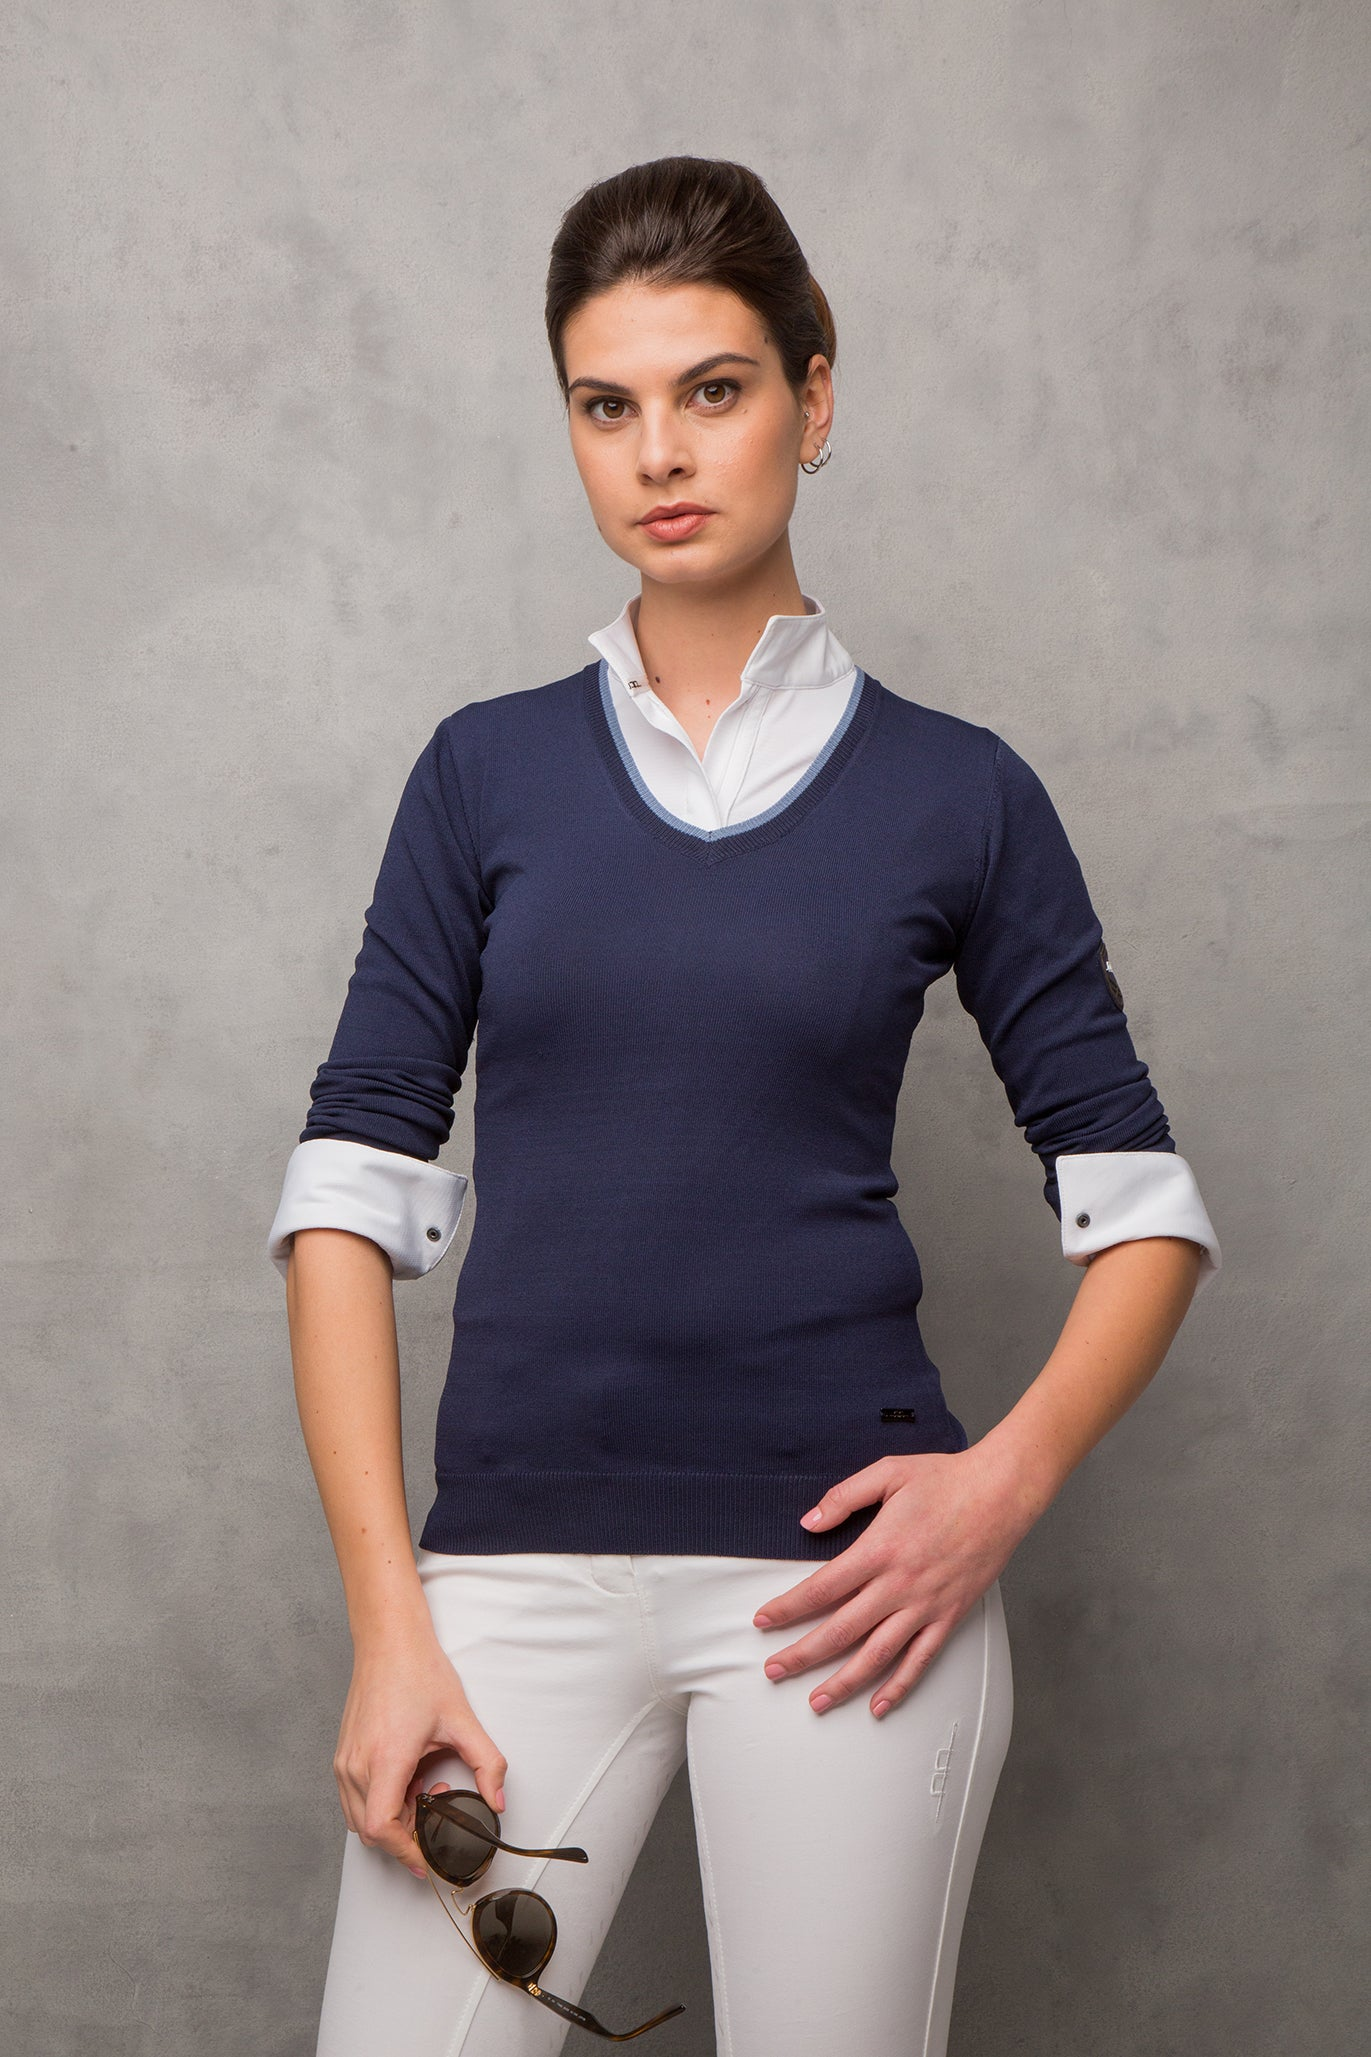 An Italian designed classic lightweight V-neck knit sweater from Alessandro Albanese, created in the luxurious blend of Rayon and Nylon. This knitted sweater is a classic, with luxury-smooth hand feel and shape retention. Perfect for all seasons.  75% Rayon, 25% Nylon Classic V-neck fit Extremely light & breathable AA badge on sleeve Easy care / Machine washable